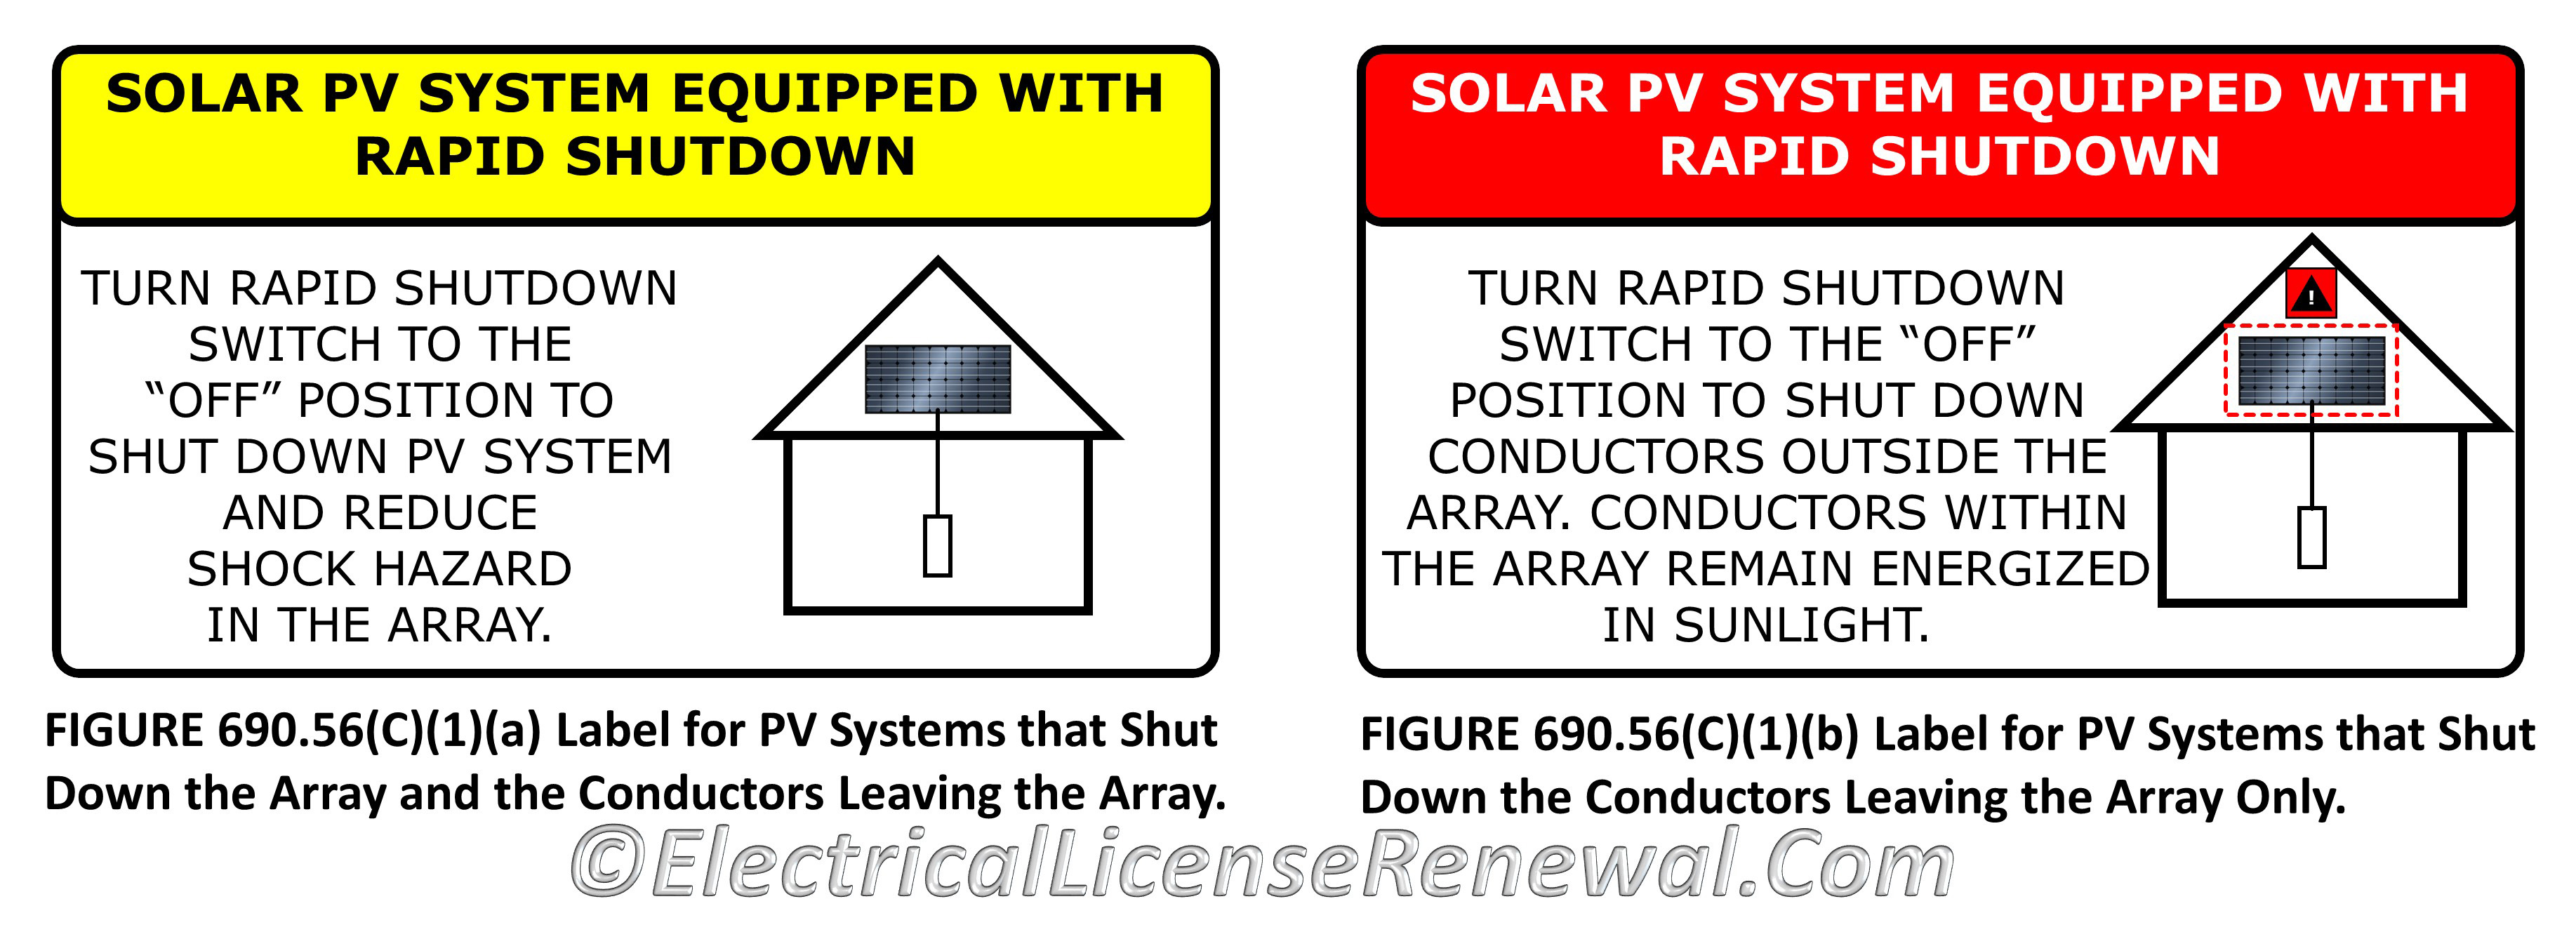 Solar Rapid Shutdown System Wiring Diagram Free Download Pv 690 56c Buildings With Schematic At